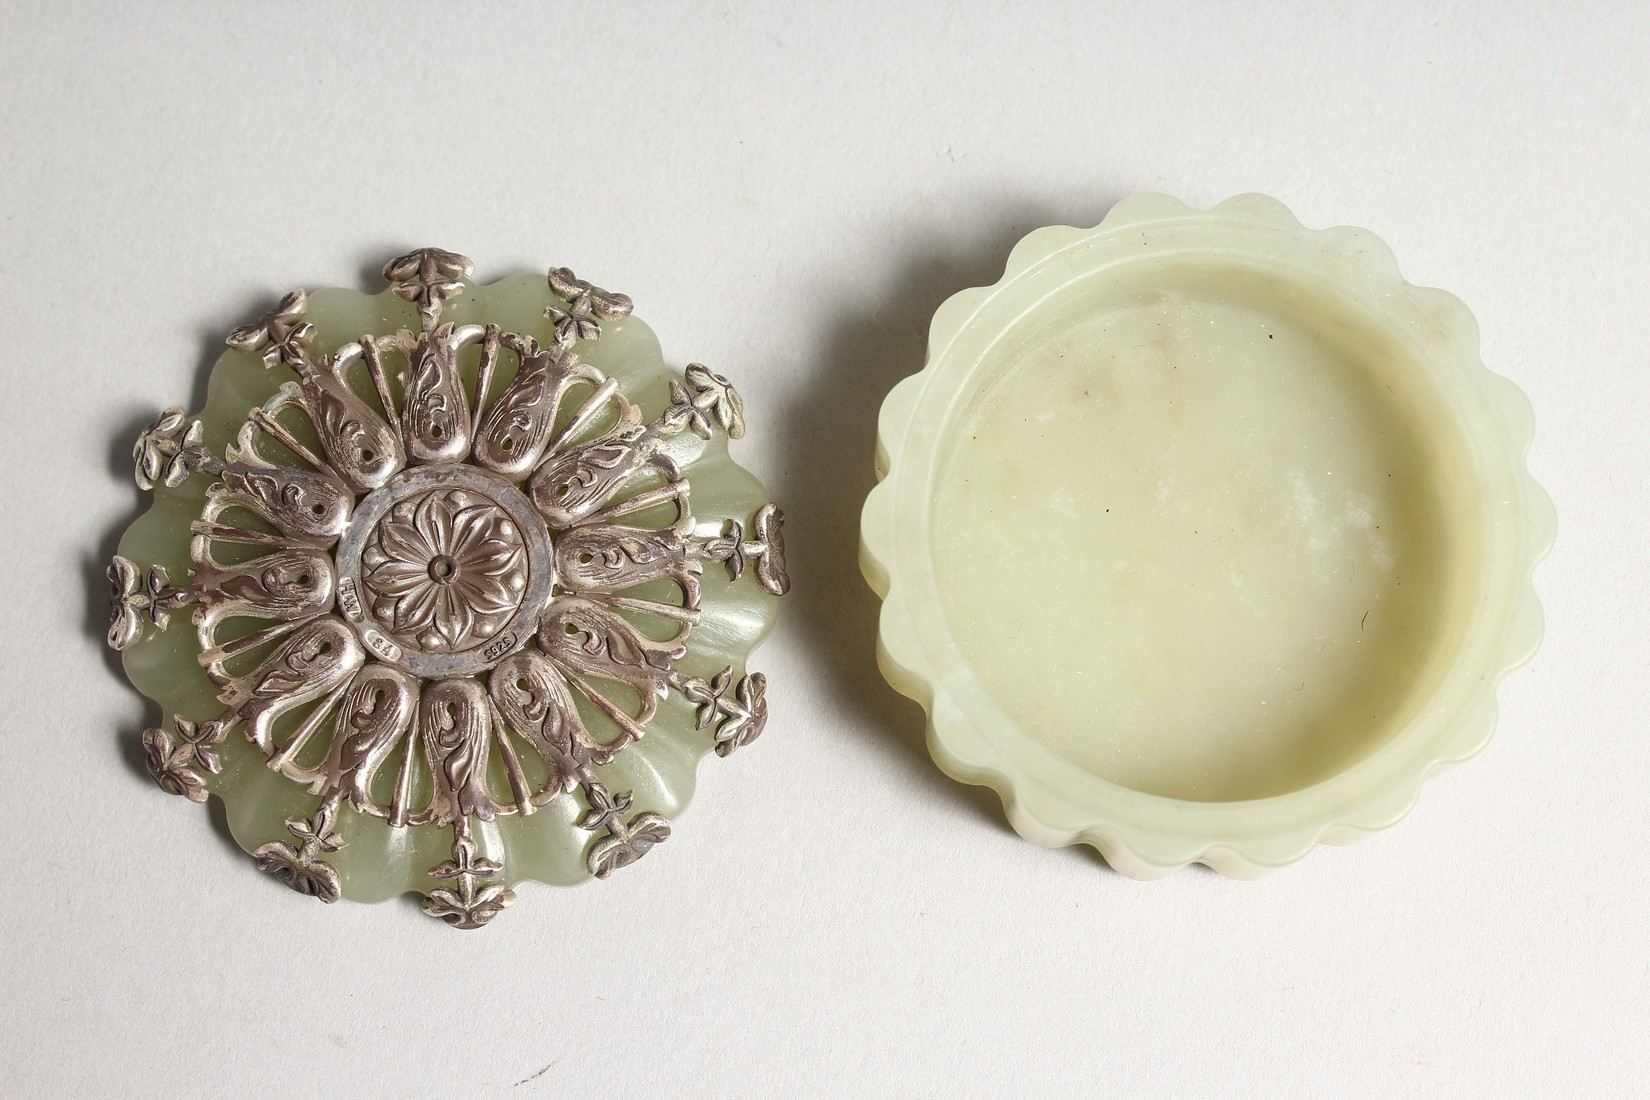 A GOOD JADE AND SILVER TOP BOX AND COVER the top stamped .925 and W. W. 84 2ins diameter. - Image 3 of 4